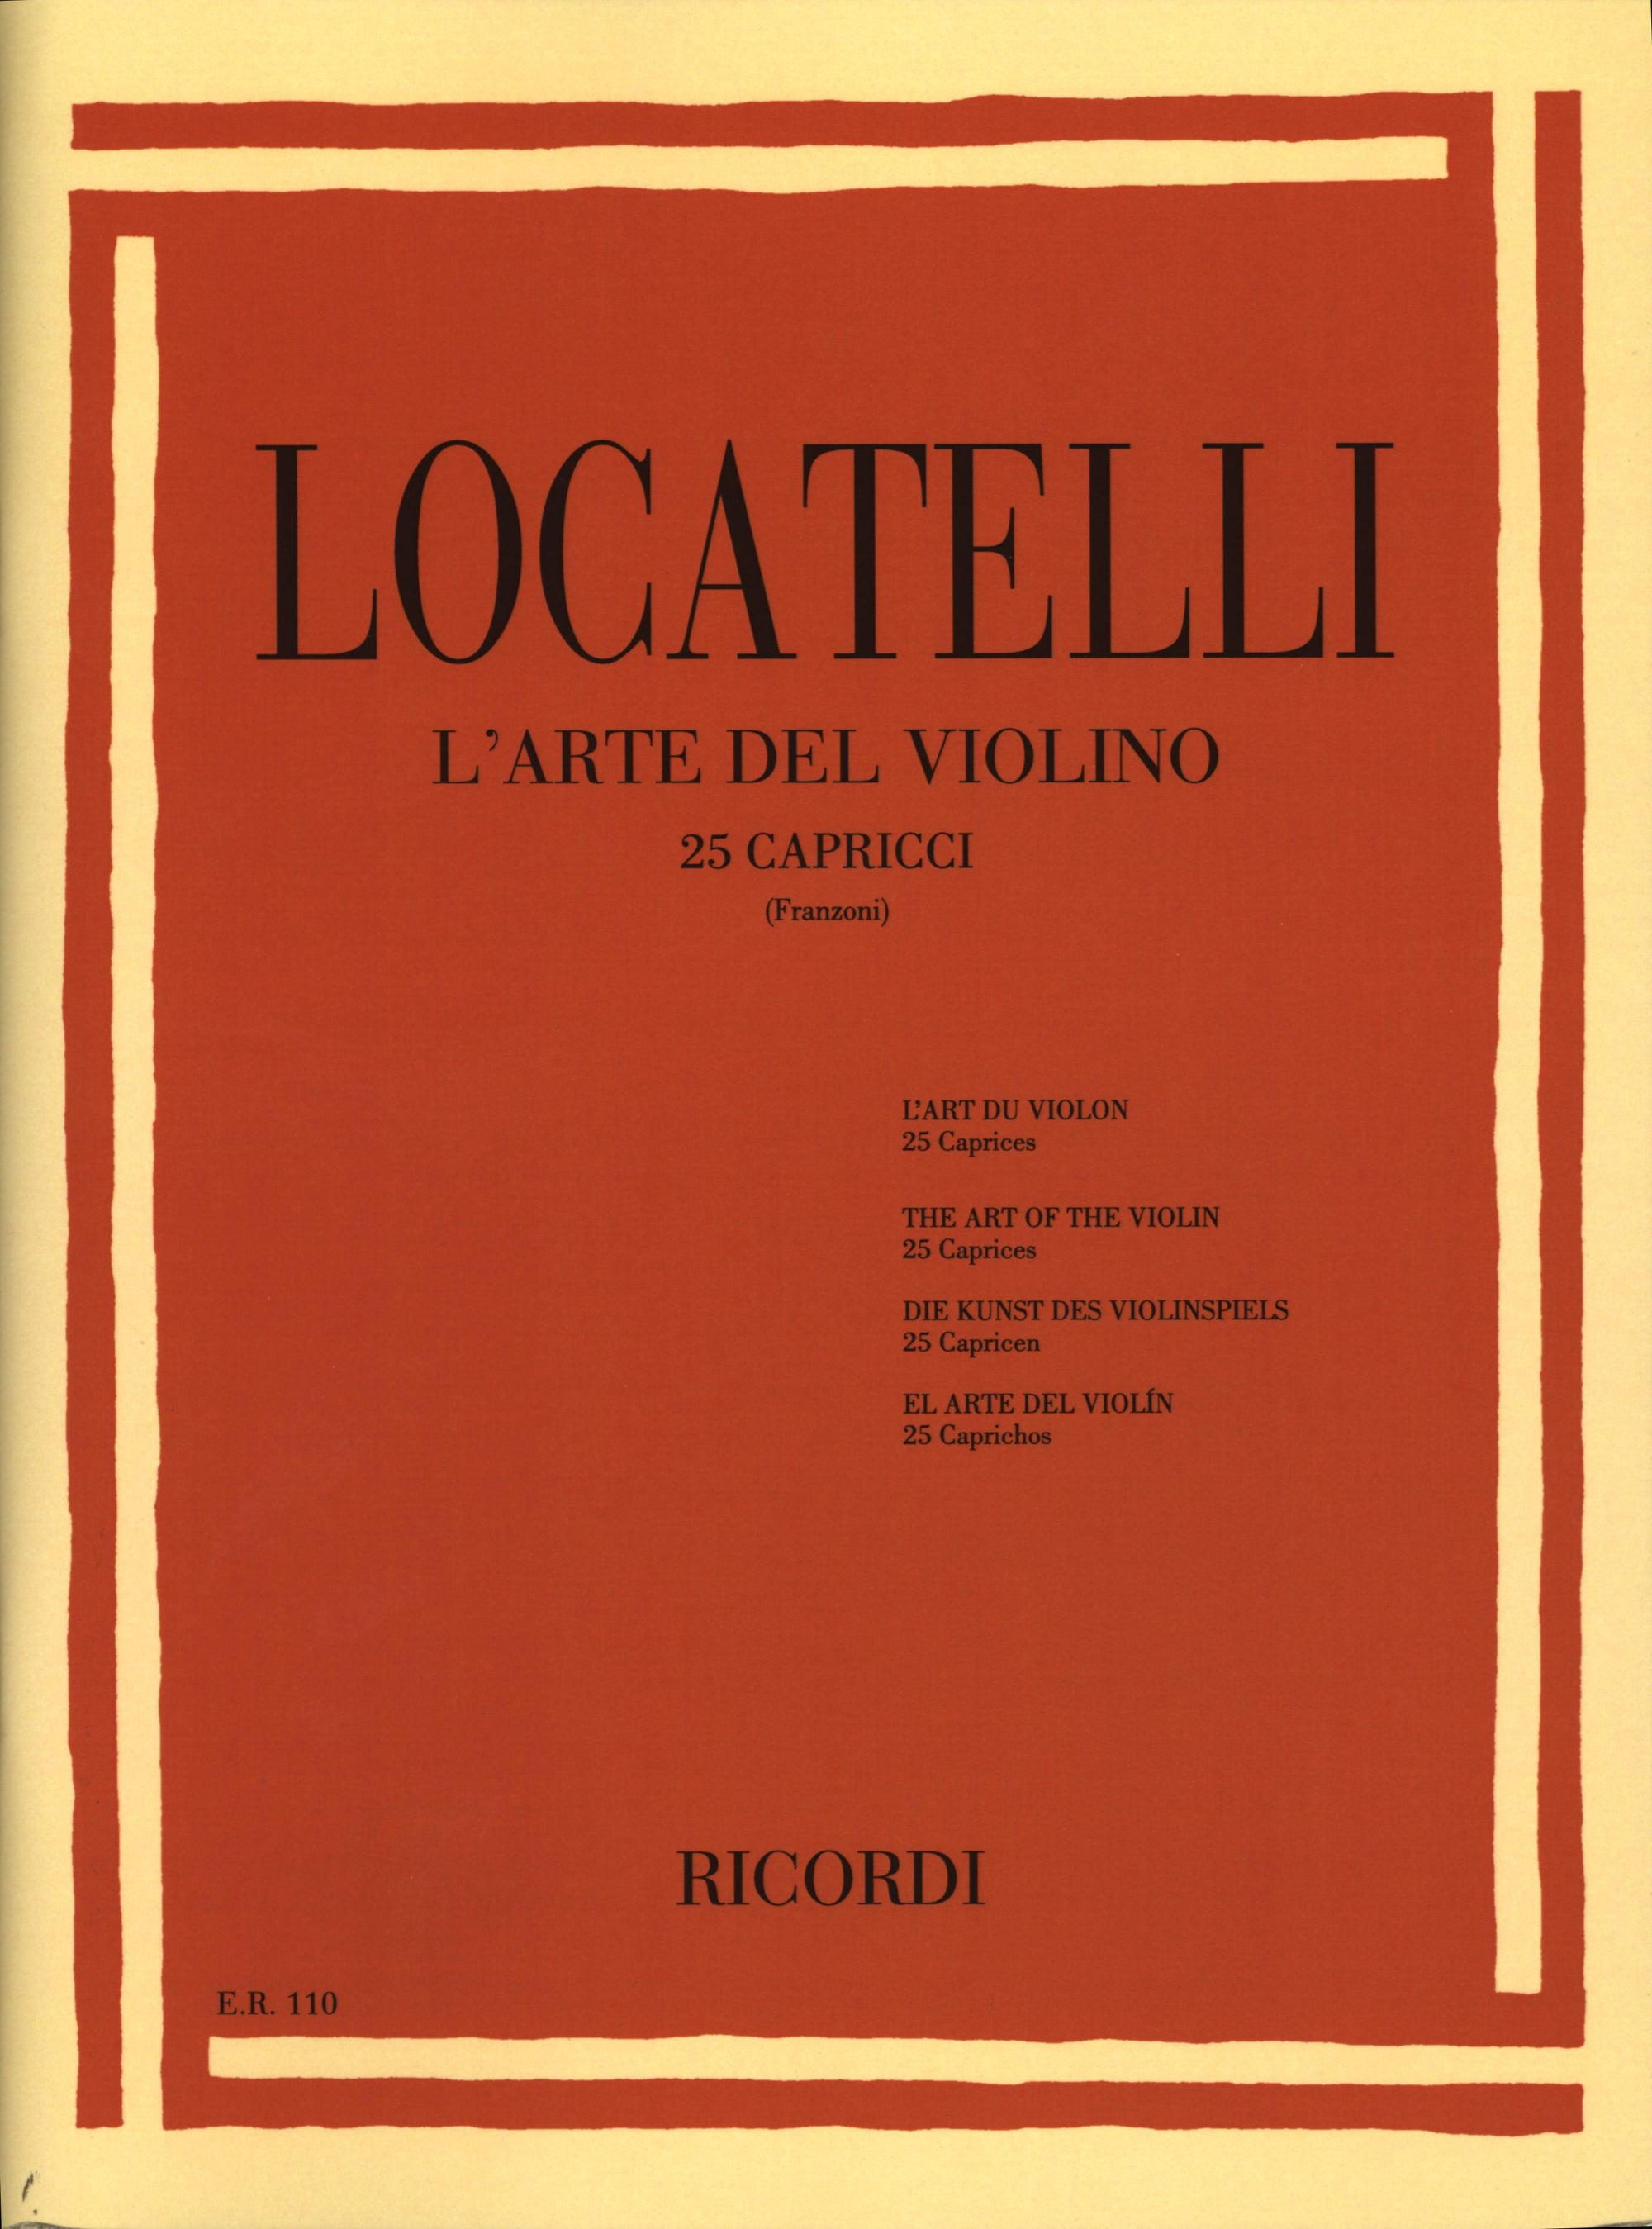 Locatelli: The Art of the Violin - 25 Caprices